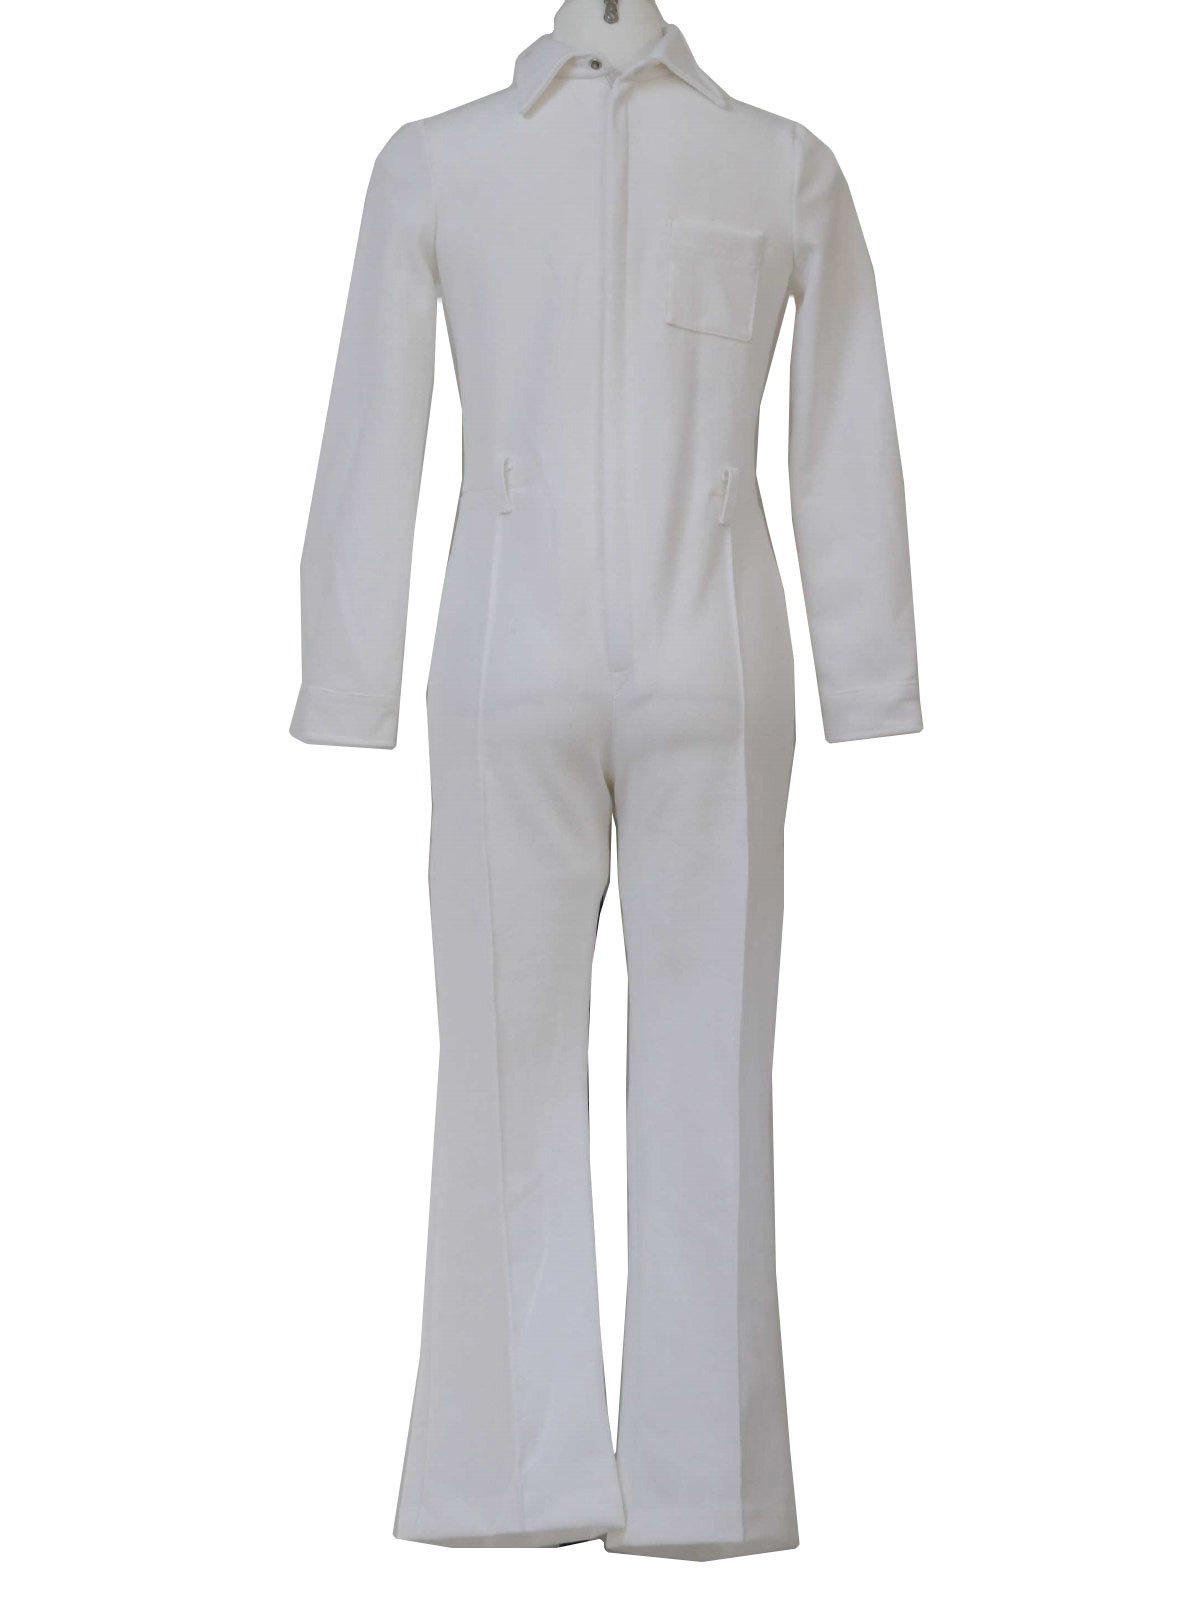 Find great deals on eBay for Mens White Jumpsuit in Men's Theater and Reenactment Costumes. Shop with confidence.